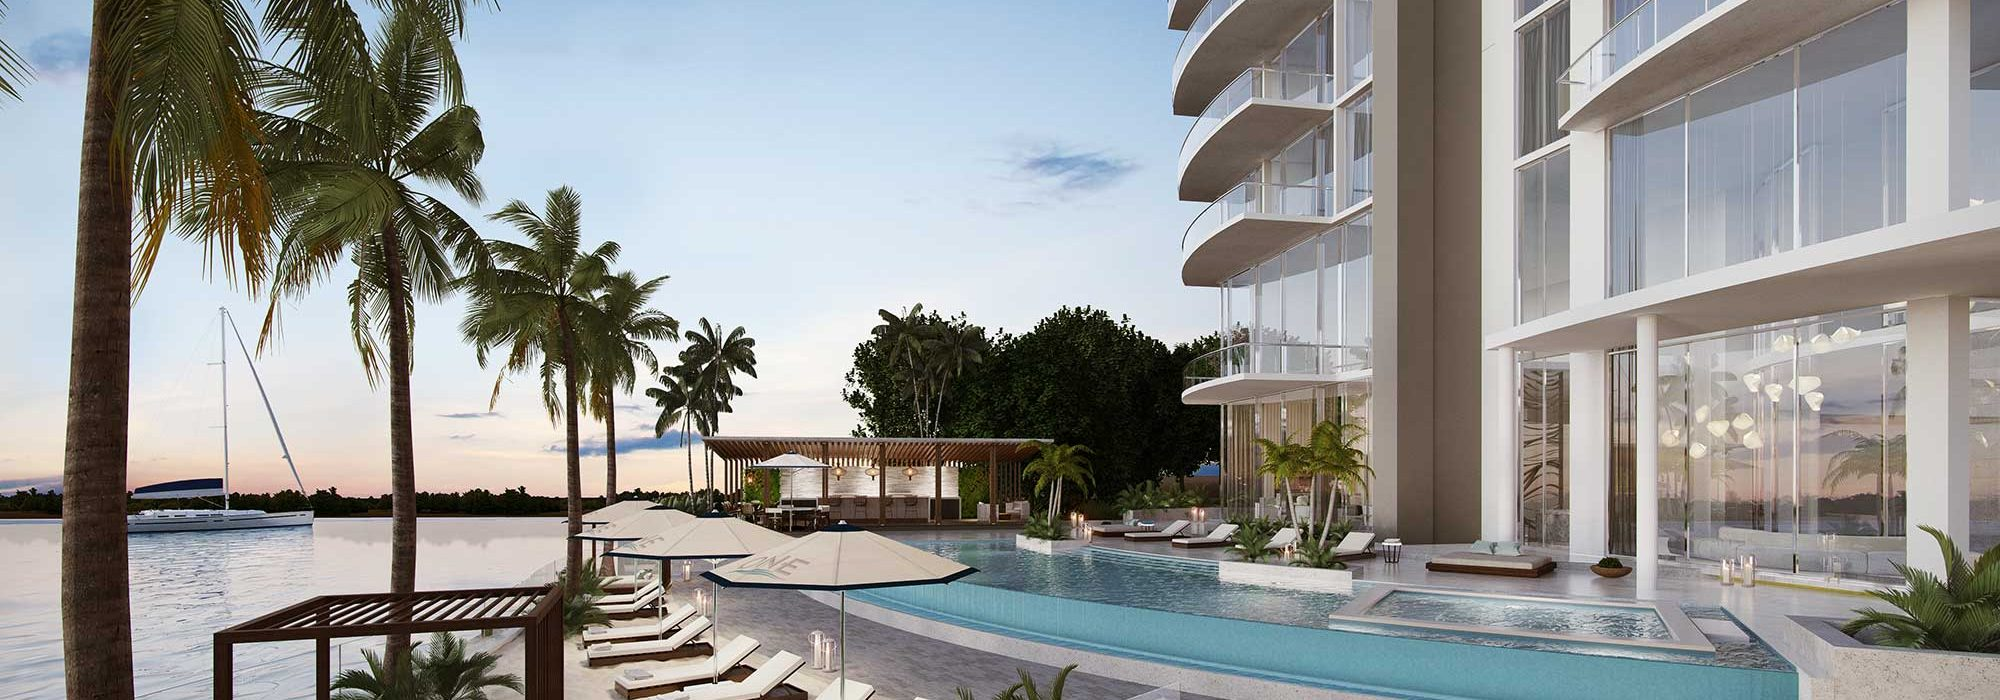 Fort Myers High Rise Condo One